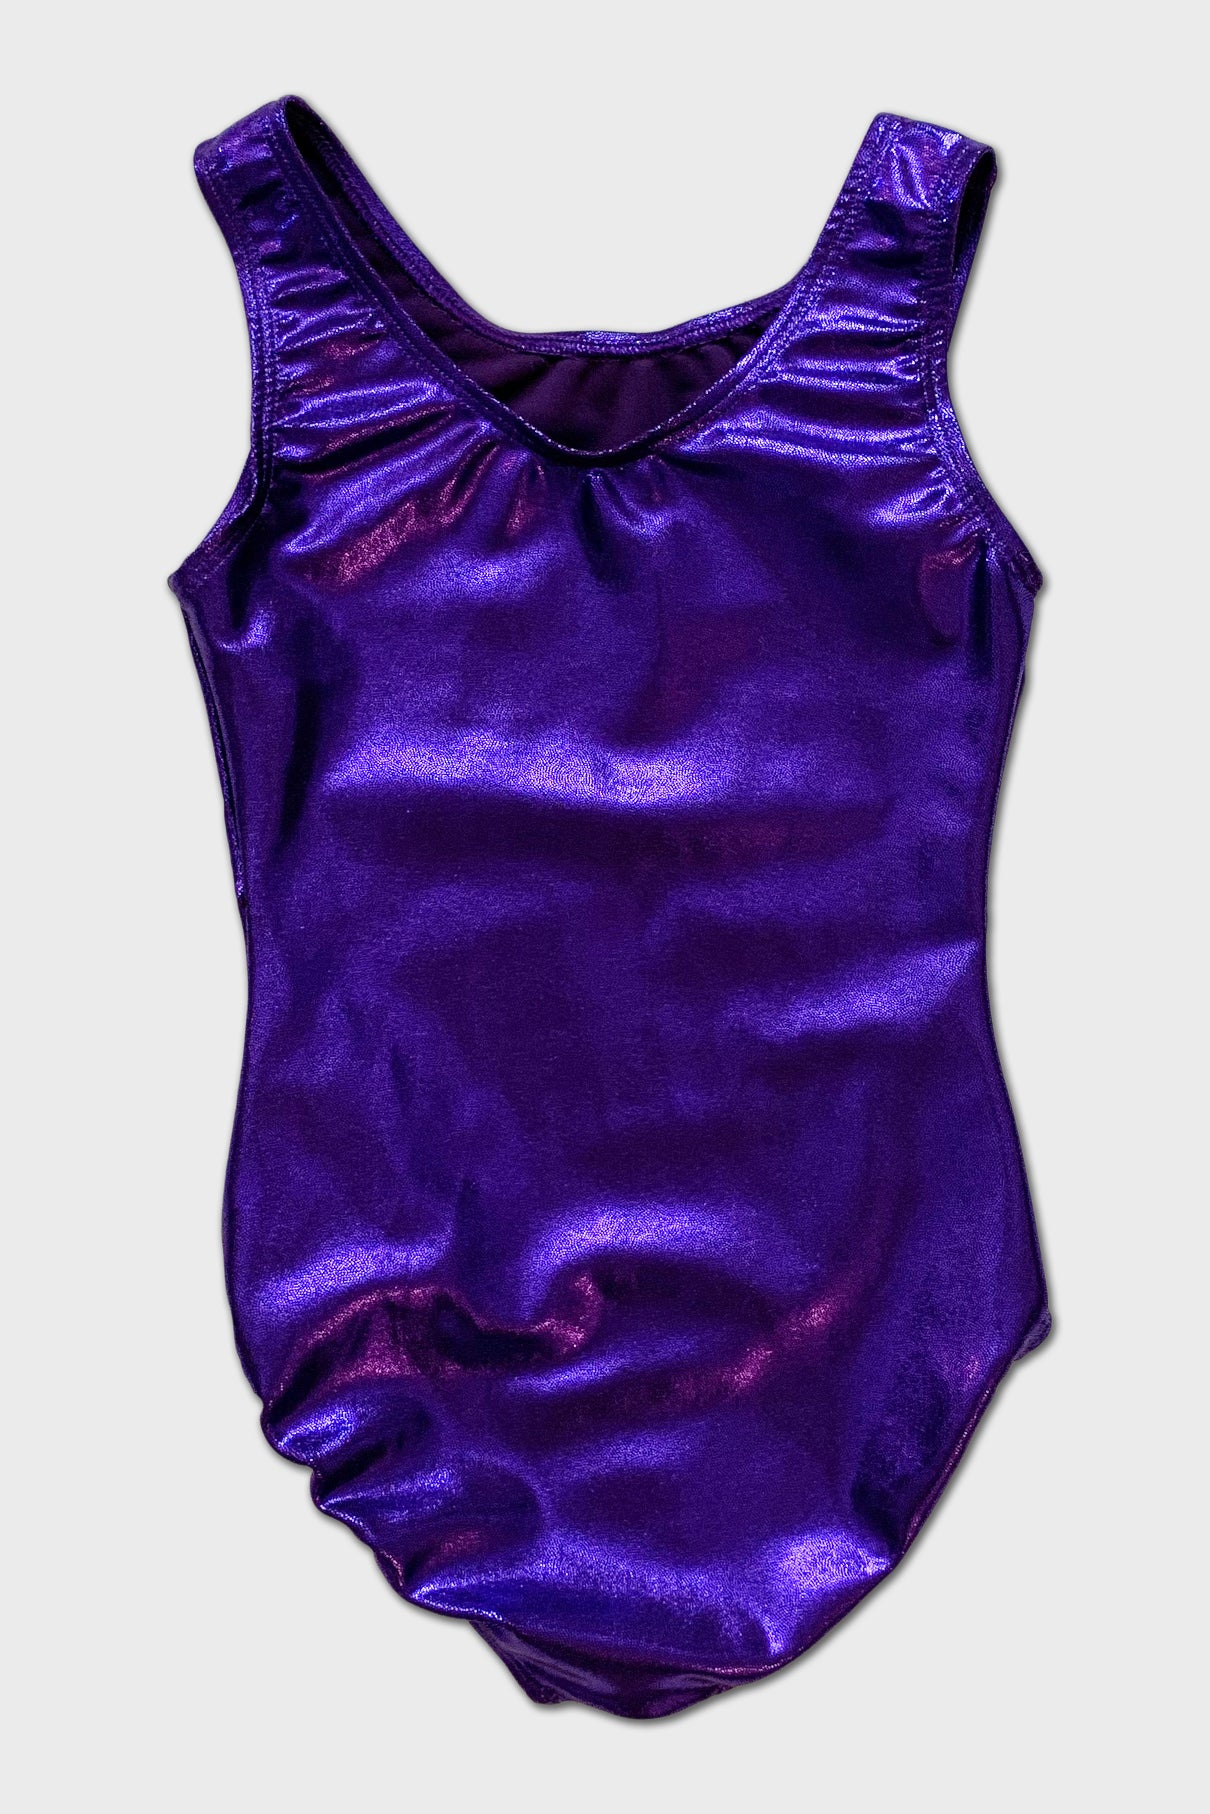 Silver Swirl Tank Leotard - Purple